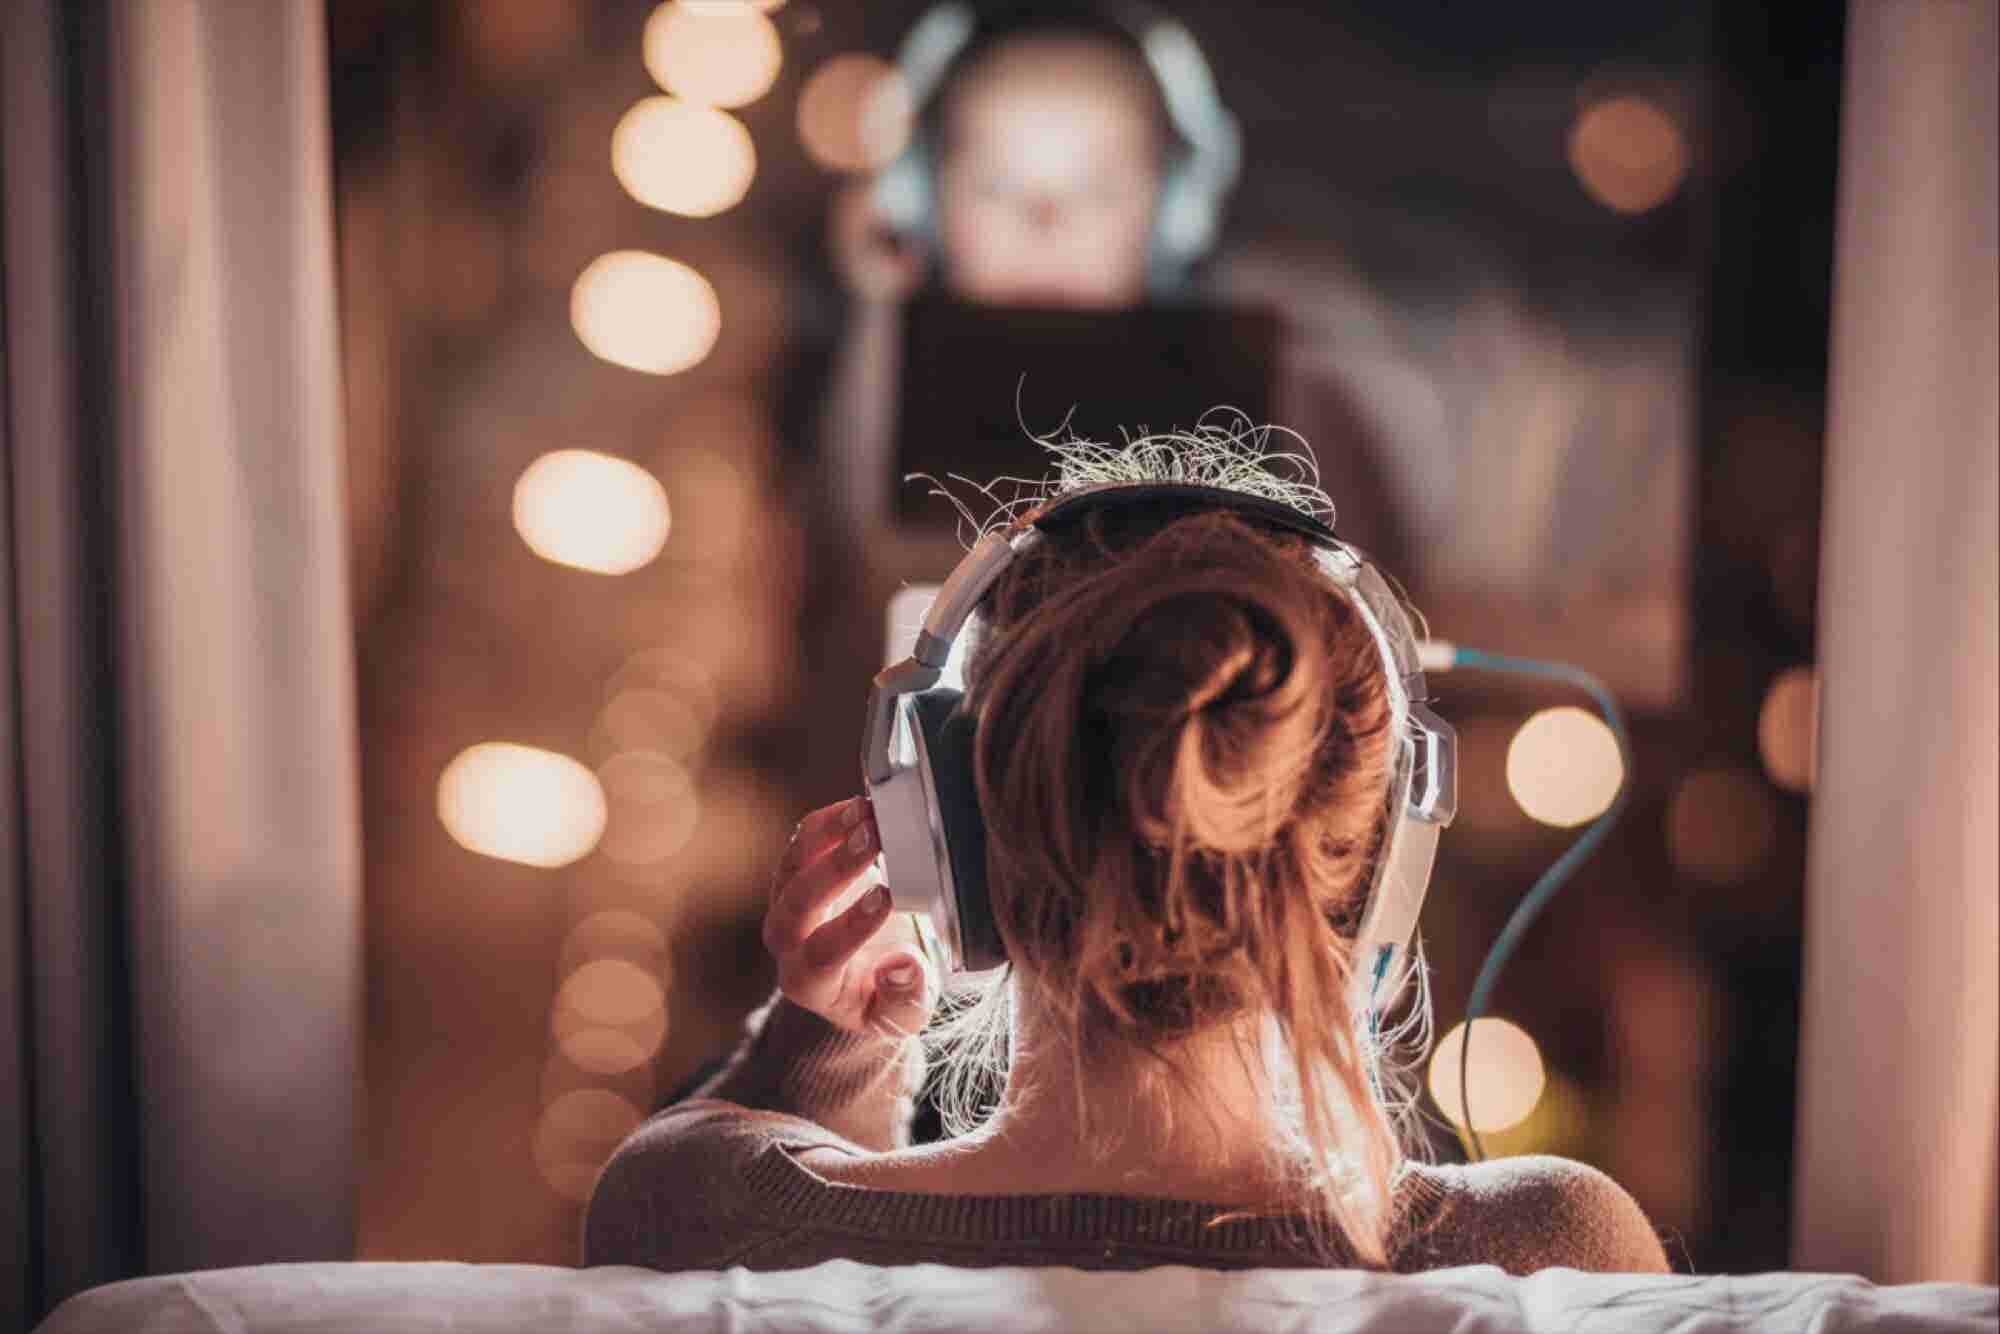 These Playlists Help Entrepreneurs Find Their Groove